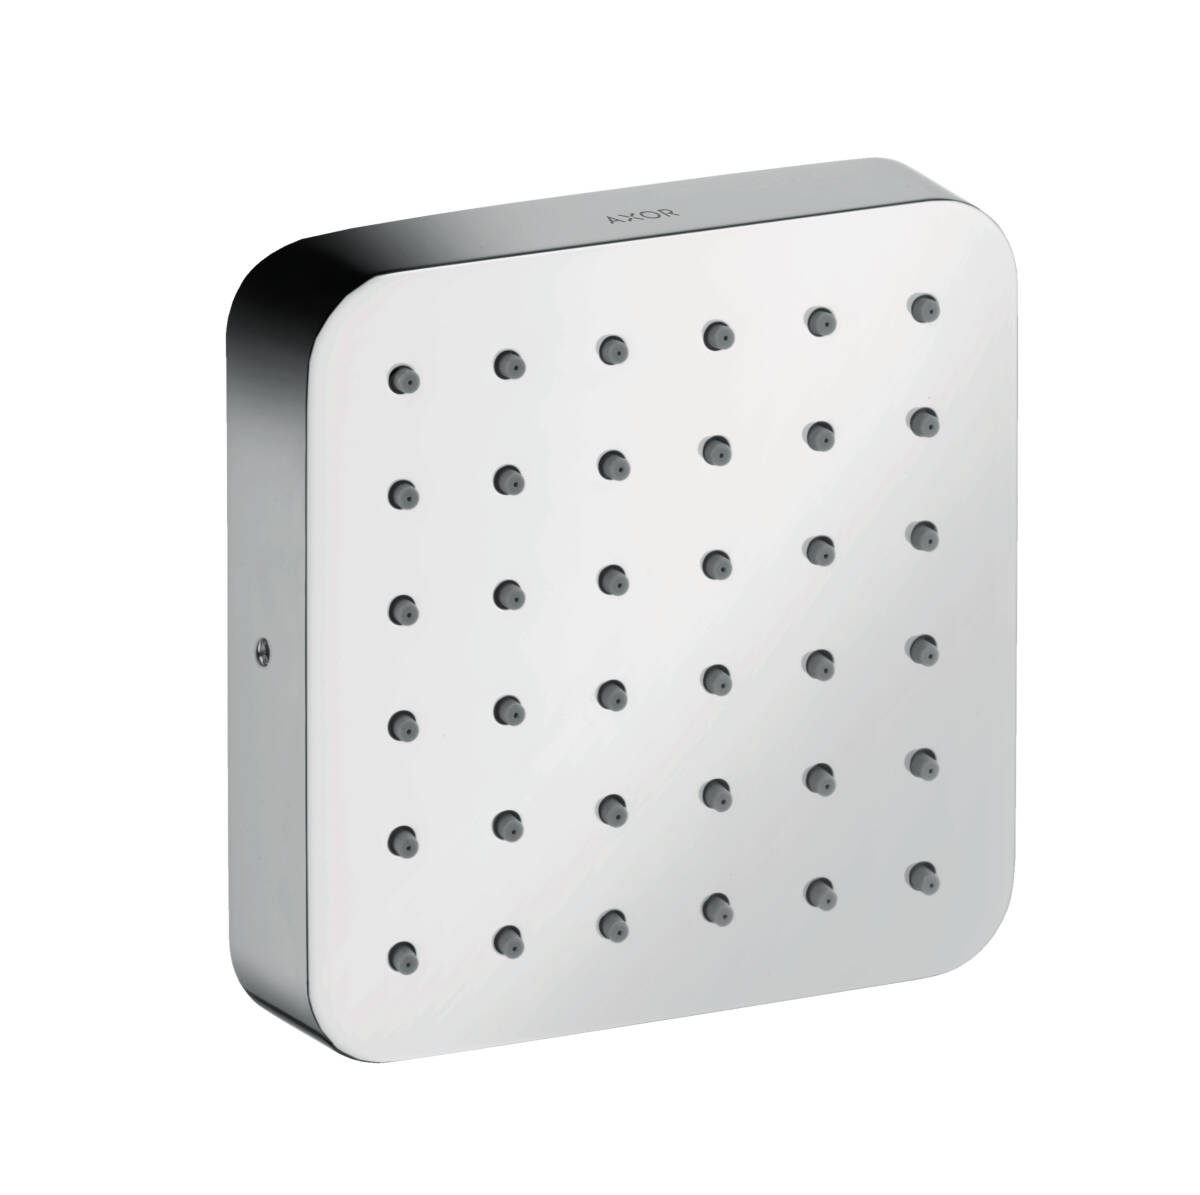 Shower module 120/120 for concealed installation softcube, Polished Red Gold, 36822300